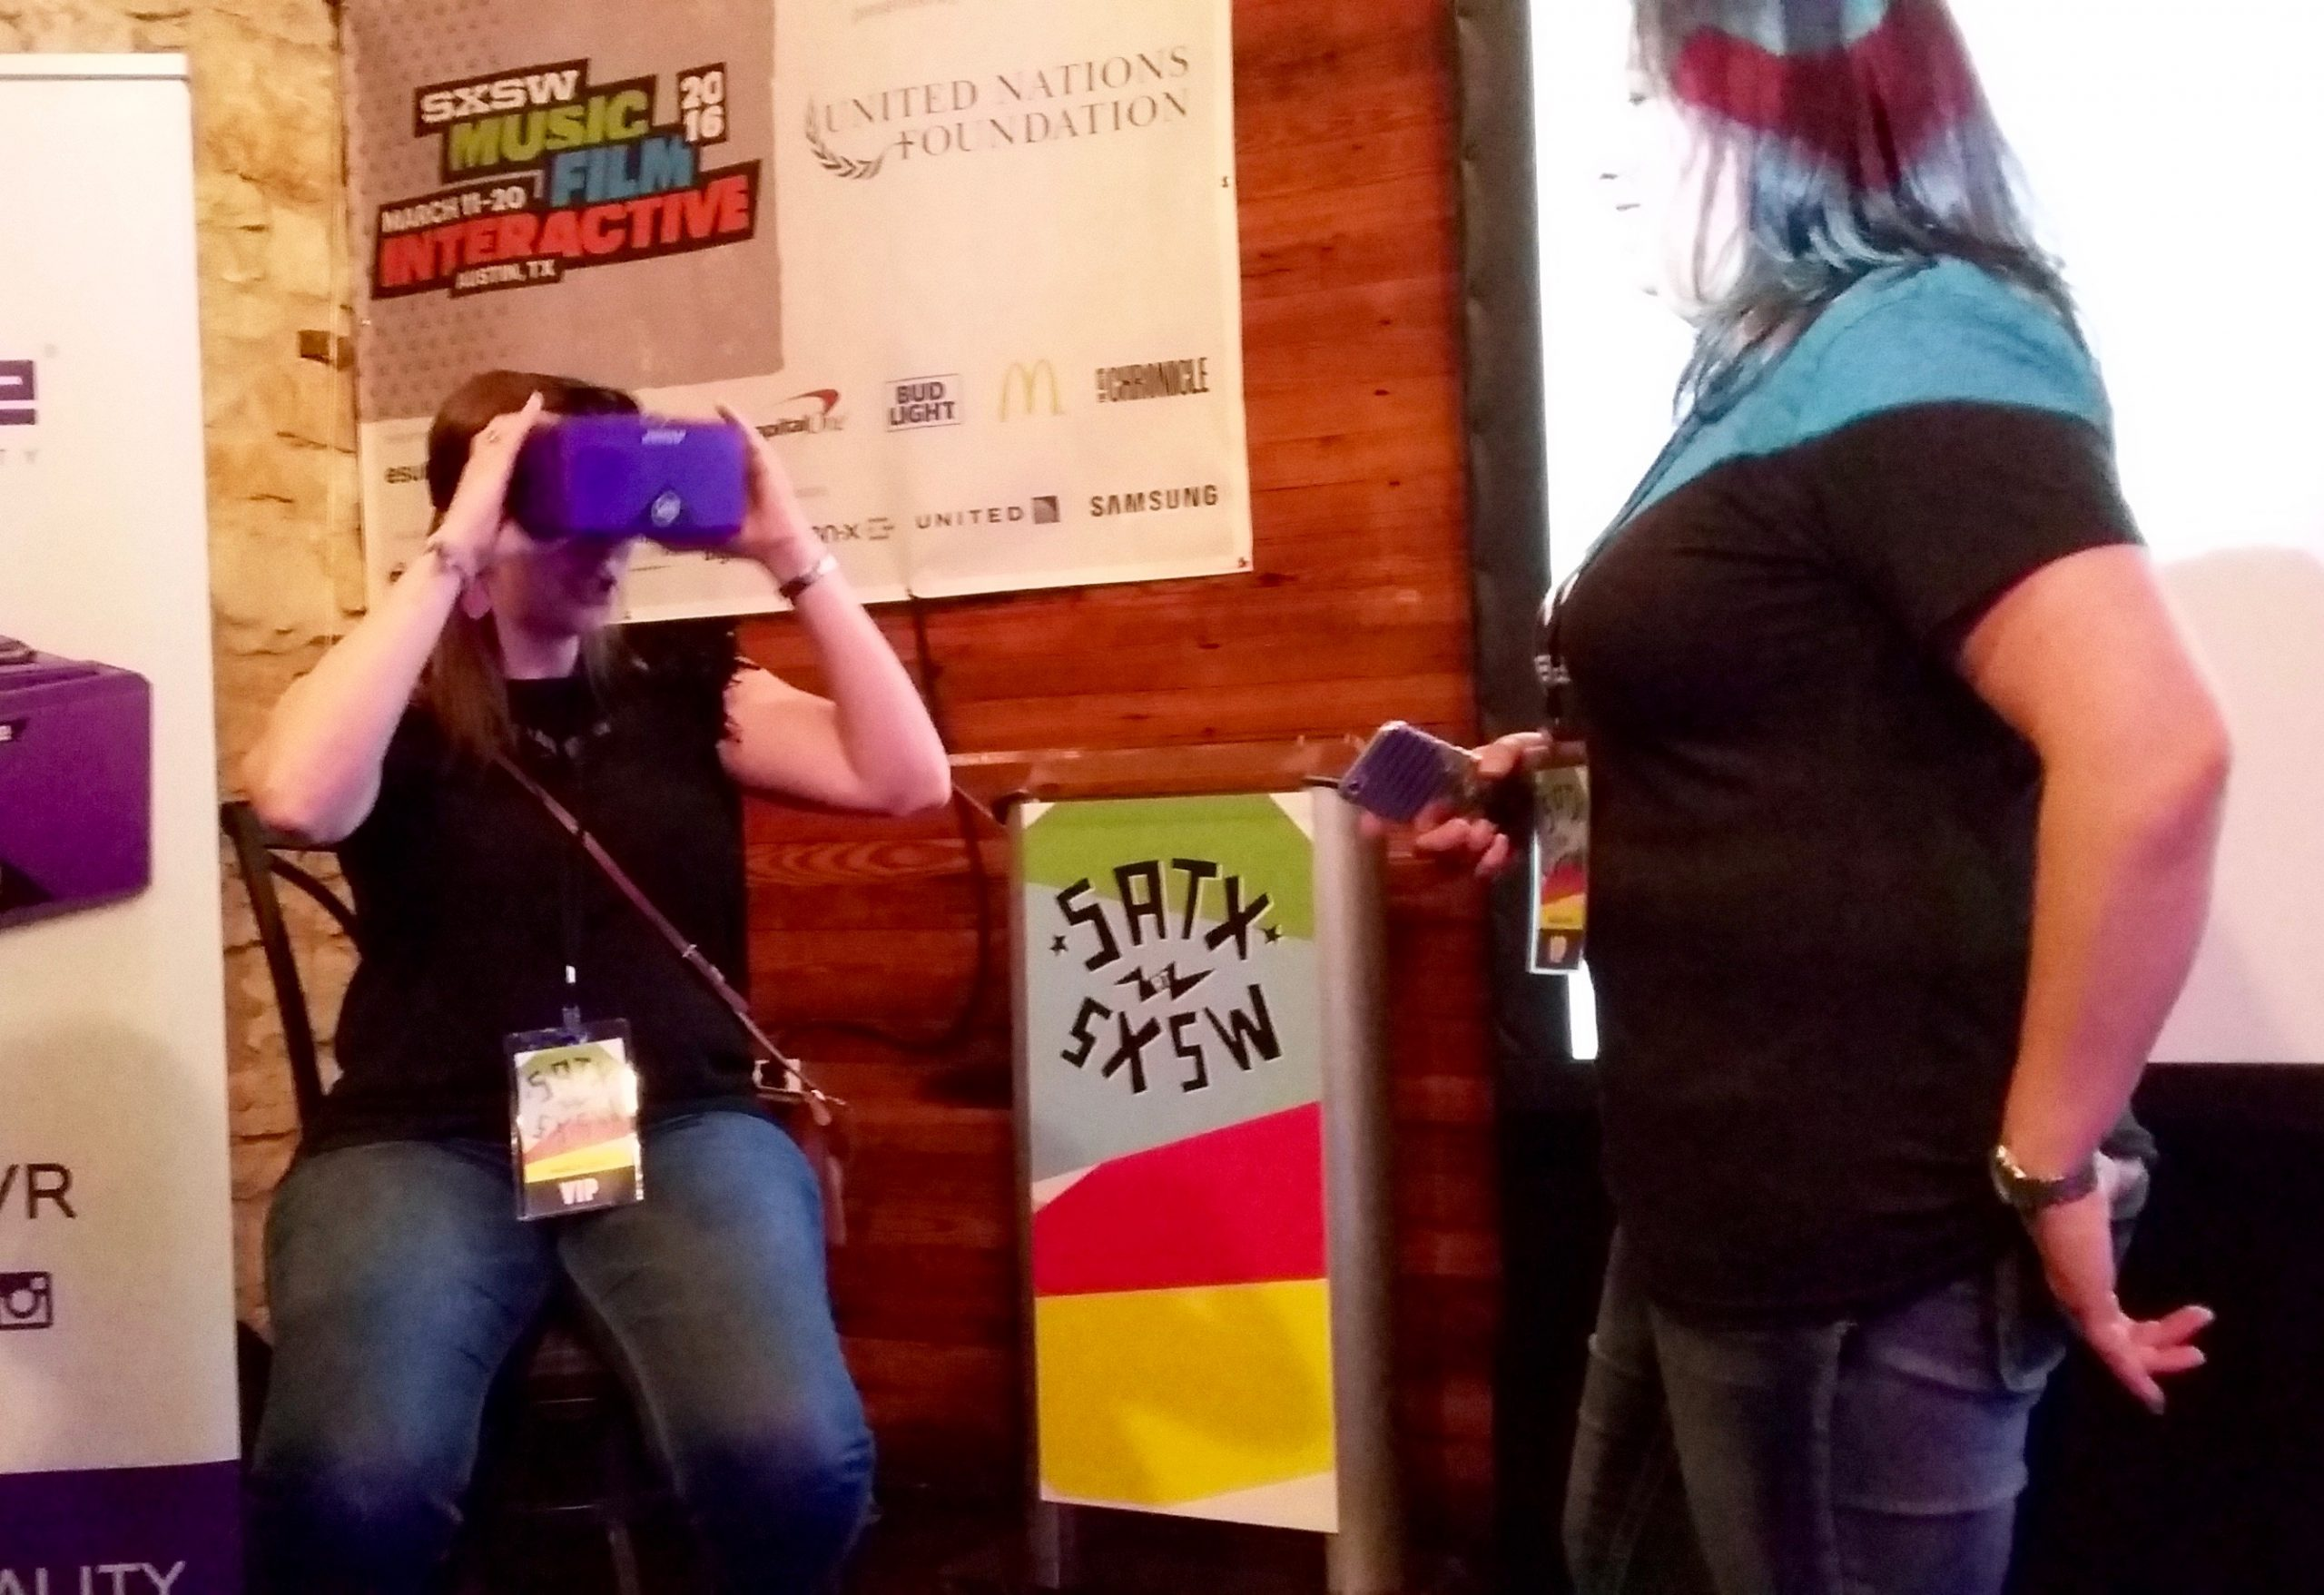 Crystal Stein of Austin (left) visits Merge VR's booth, as Choose San Antonio volunteer Jennifer Alaniz looks on, at a startup community party at Austin's Old School Bar and Grill on Friday, March 11, 2016. Photo by Edmond Ortiz